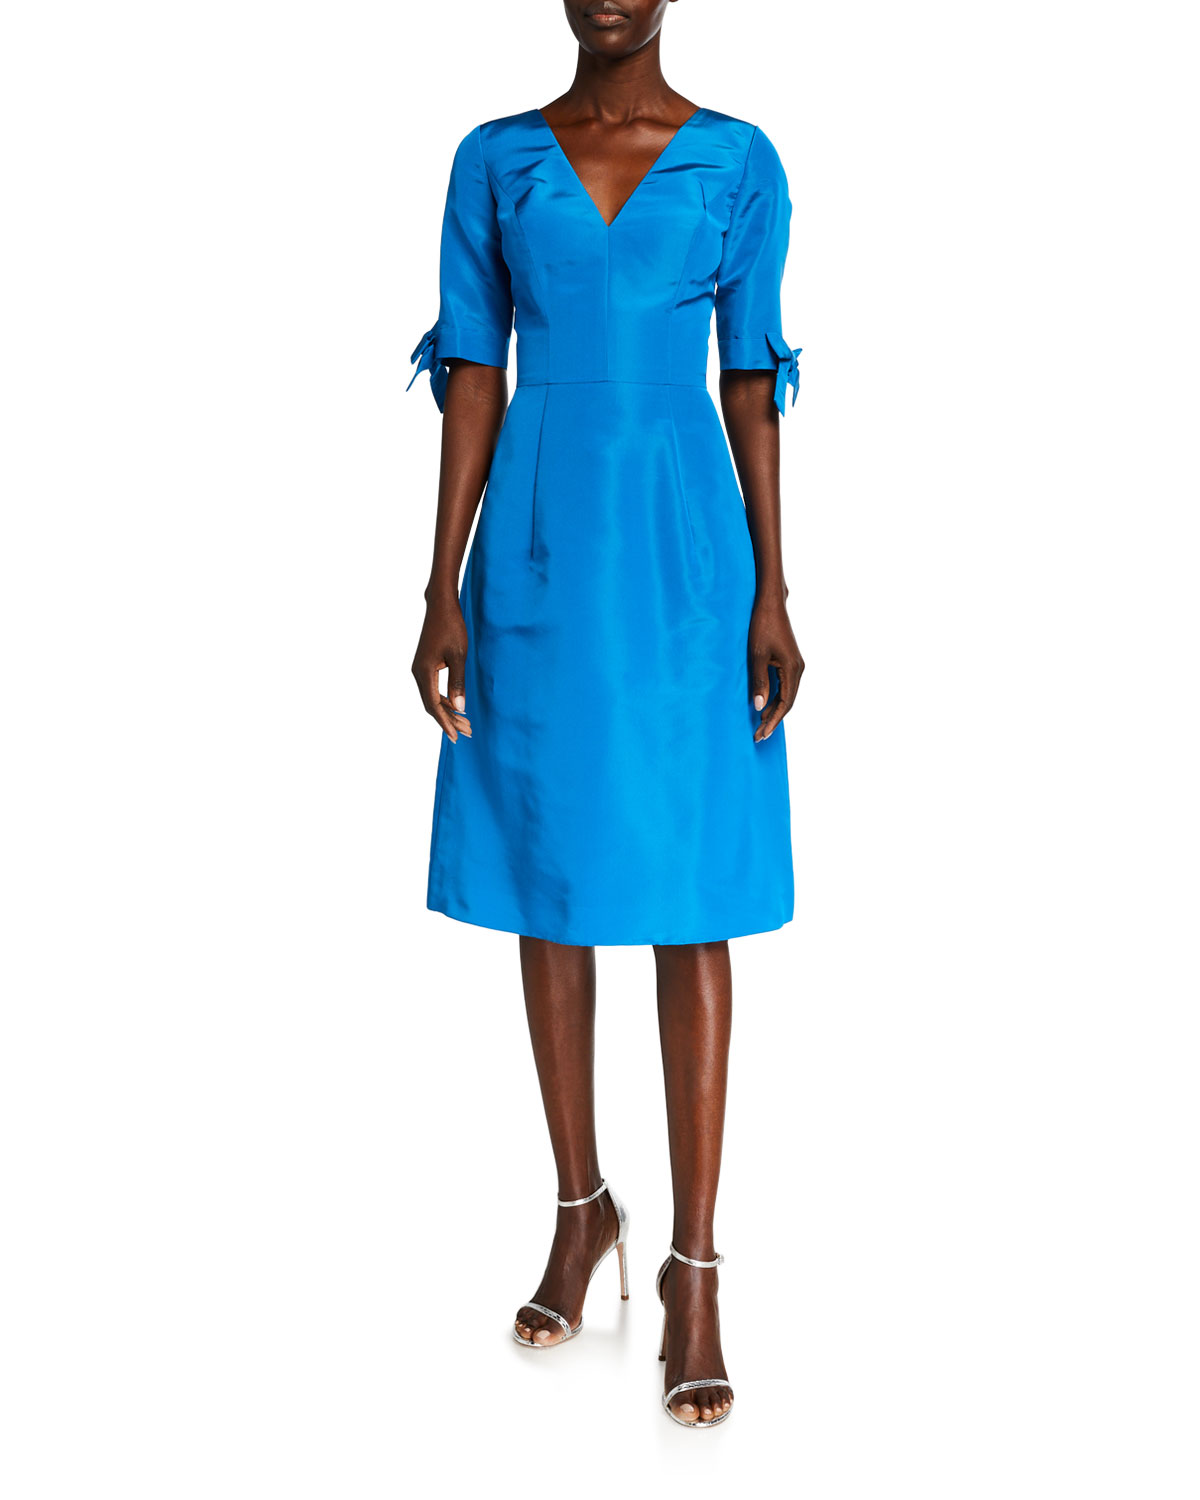 Carolina Herrera 1/2-SLEEVE SILK FAILLE DRESS